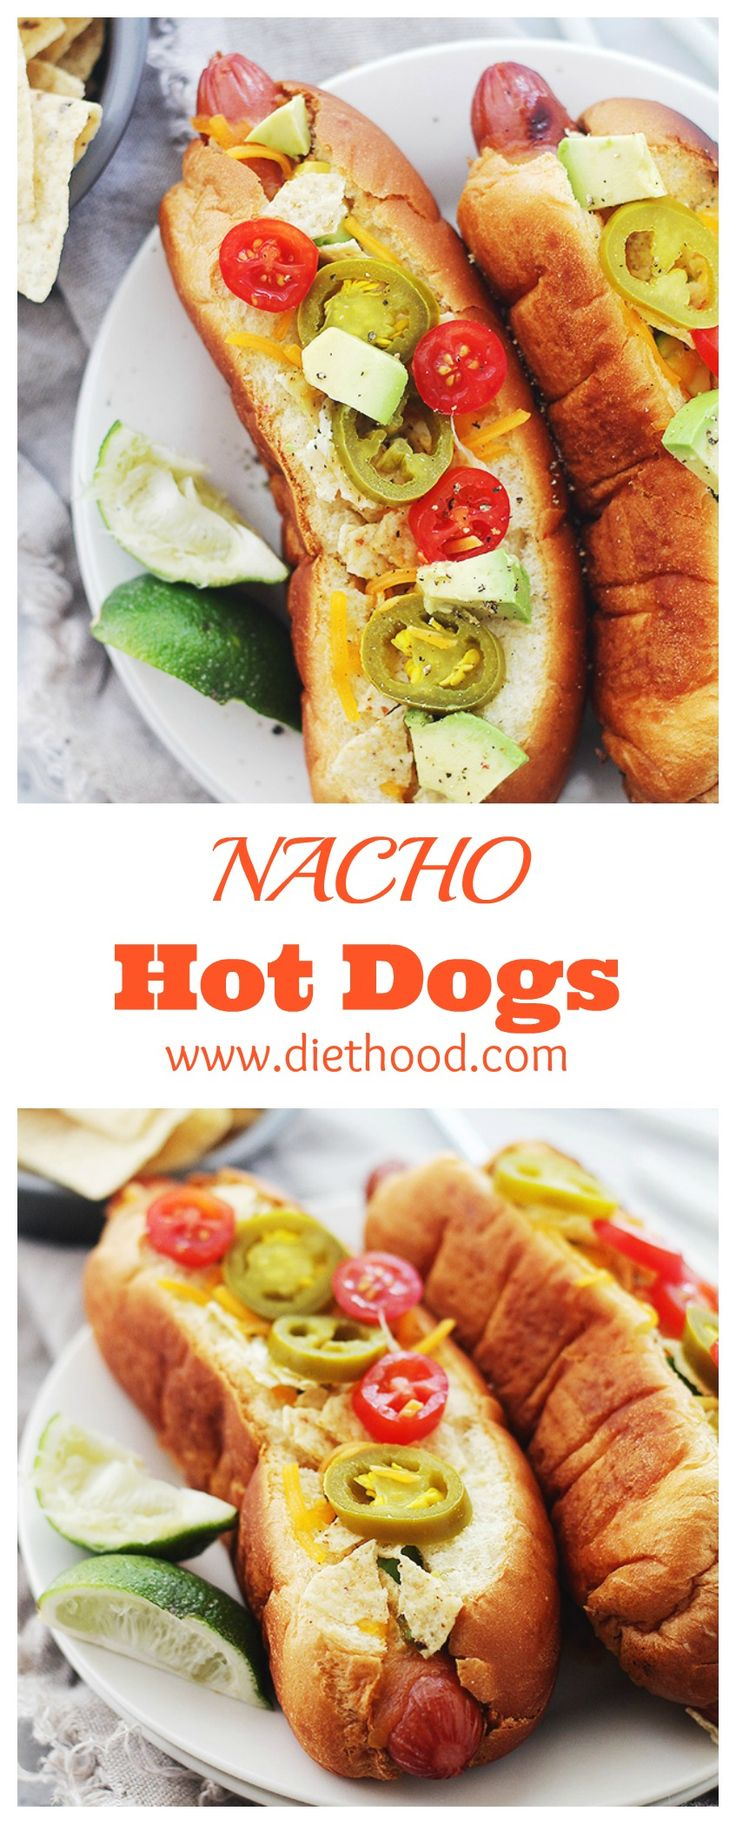 Nacho Hot Dogs: cheesy and crunchy Nacho Hot Dogs packed with tortilla chips, jalapenos, avocado, tomatoes, and sour cream! Next-level BBQ recipe right here.